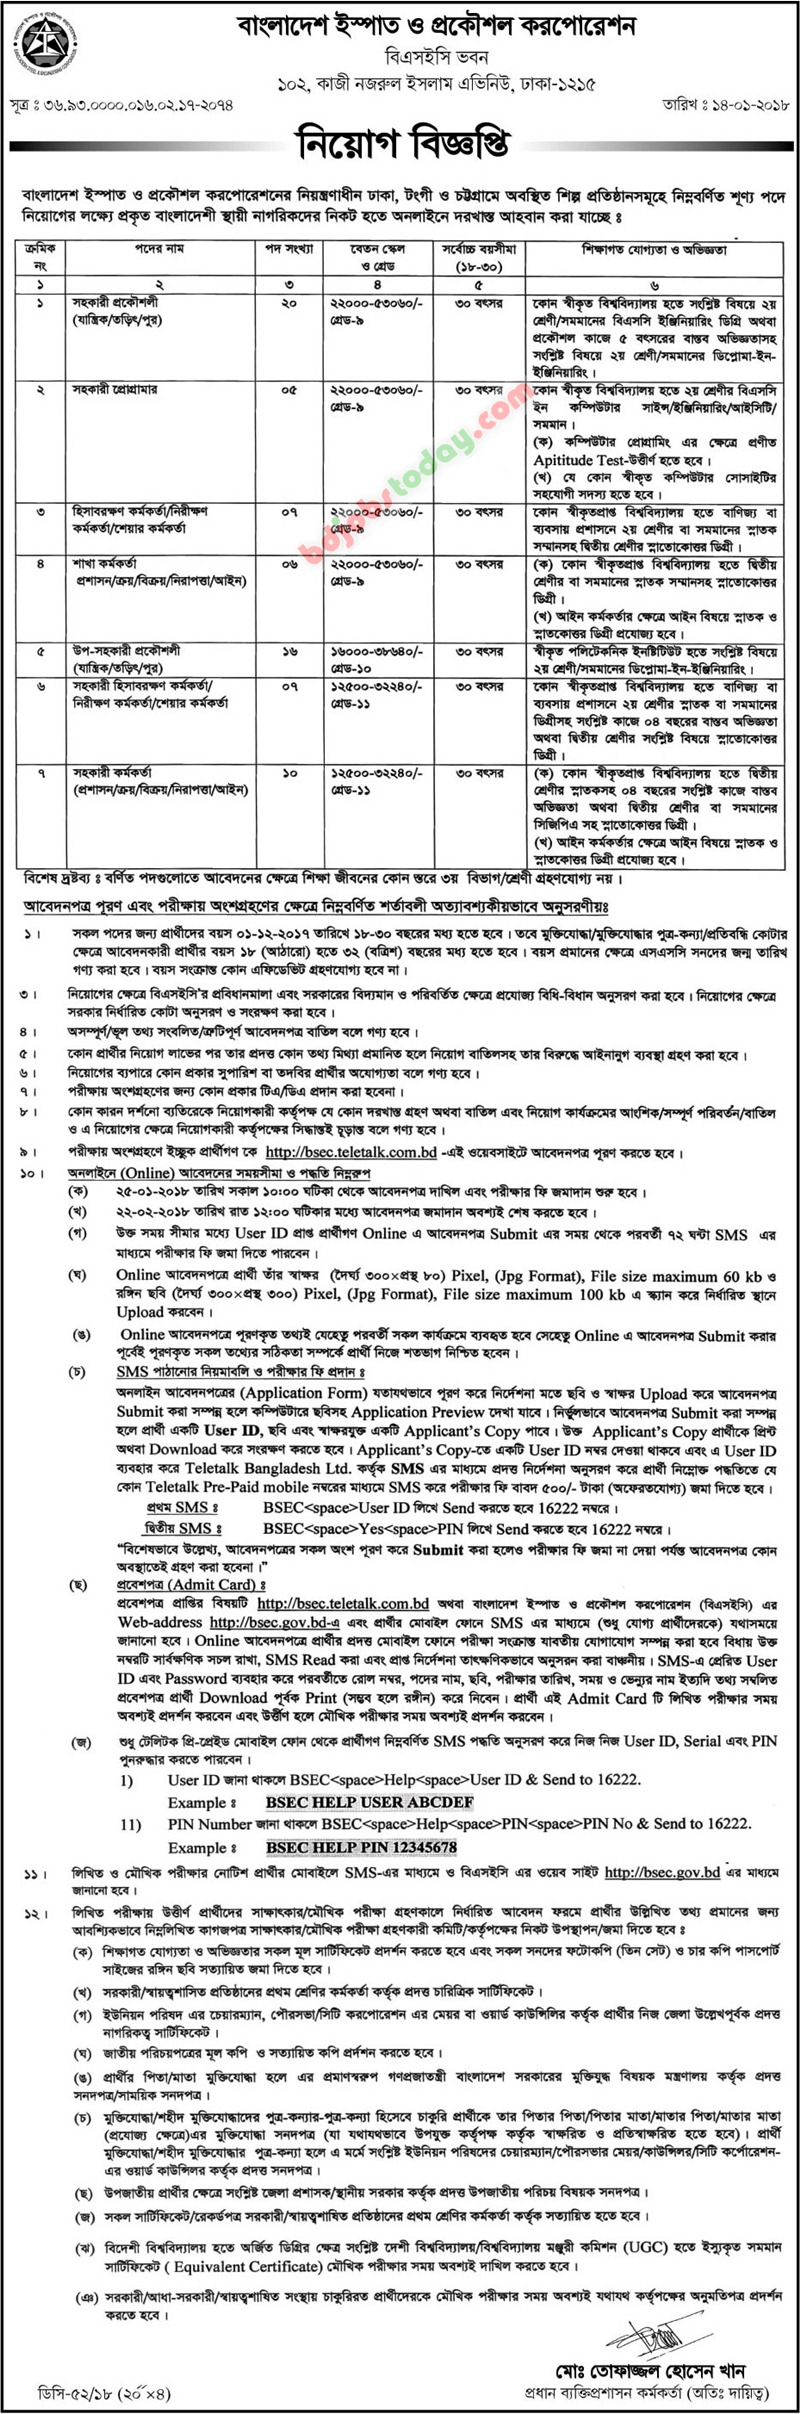 Bangladesh Steel and Engineering Corporation (BSEC) jobs